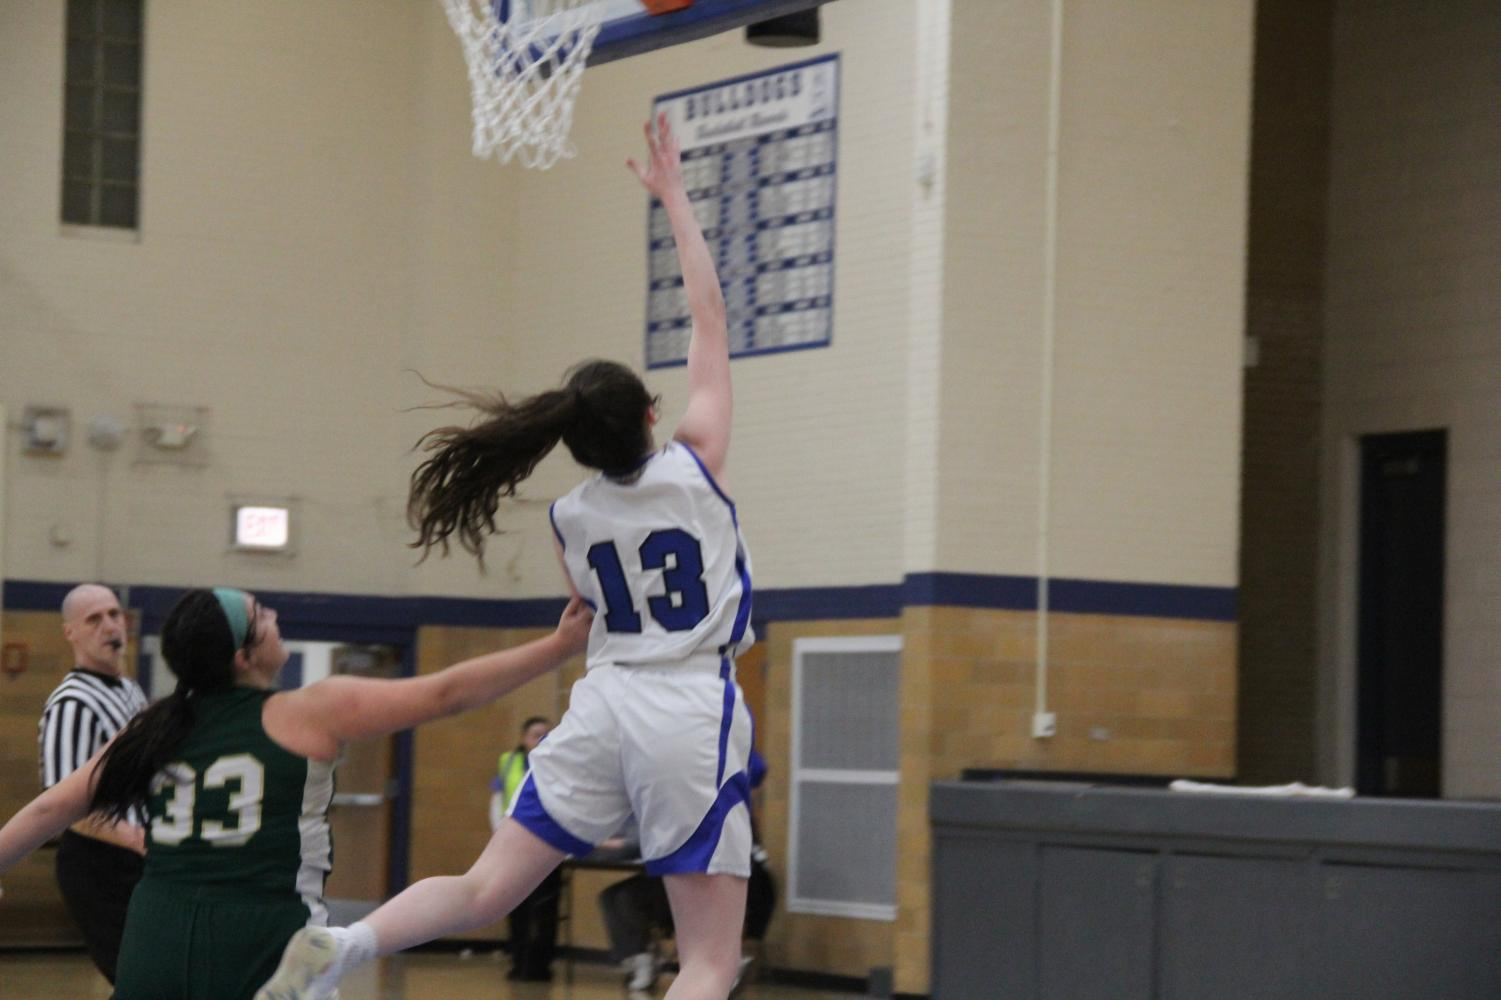 Junior Brenna Loftus going up for a layup.               ‎‏‏‎ ‎‏‏‎ ‎‏‏‎ ‎‏‏‎ ‎‏‏‎ ‎‏‏‎ ‎Photo courtesy of Rouser.